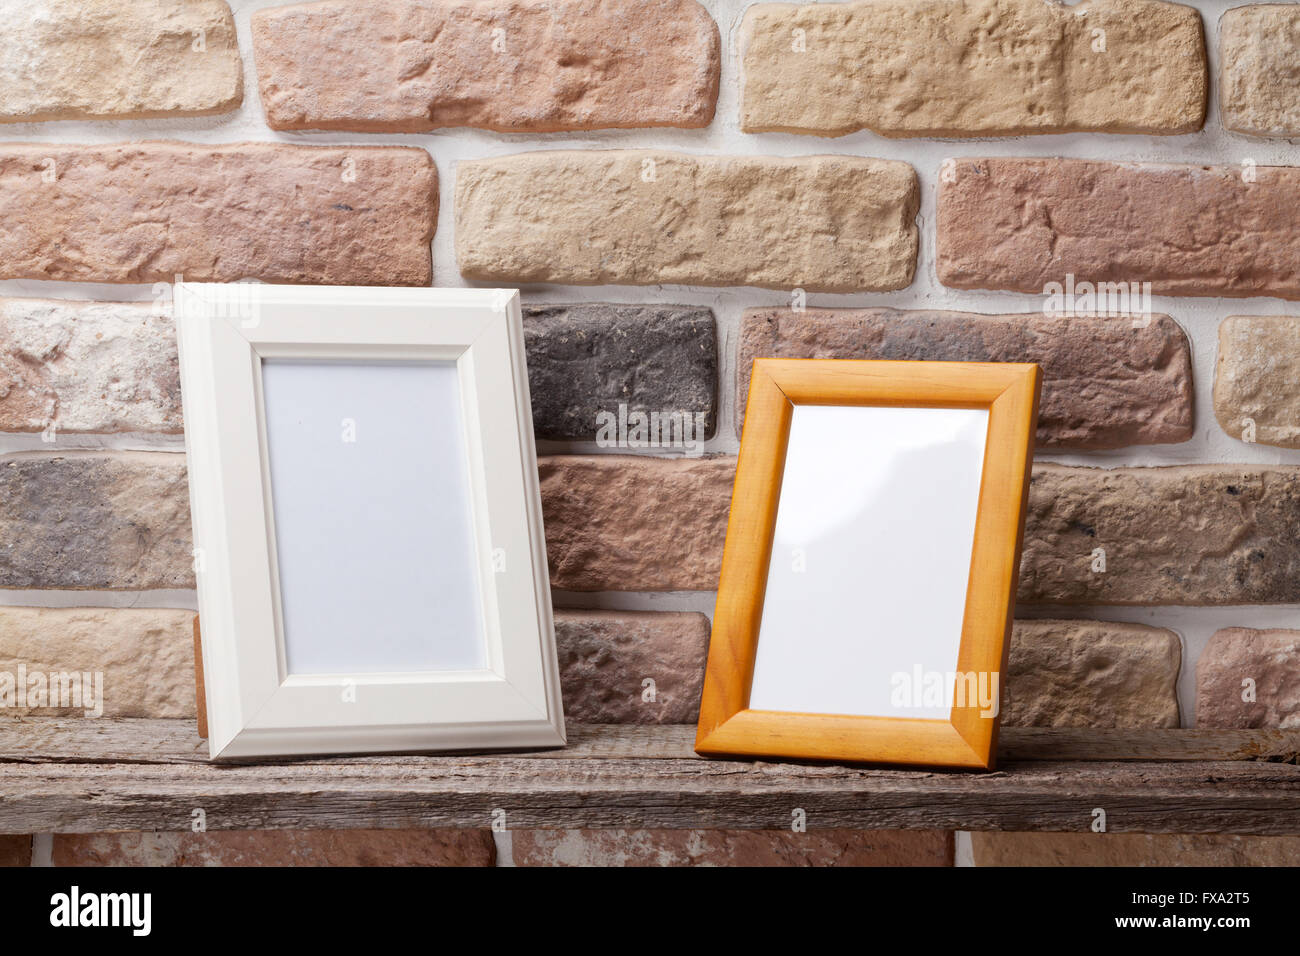 Blank photo frames on shelf in front of brick wall - Stock Image